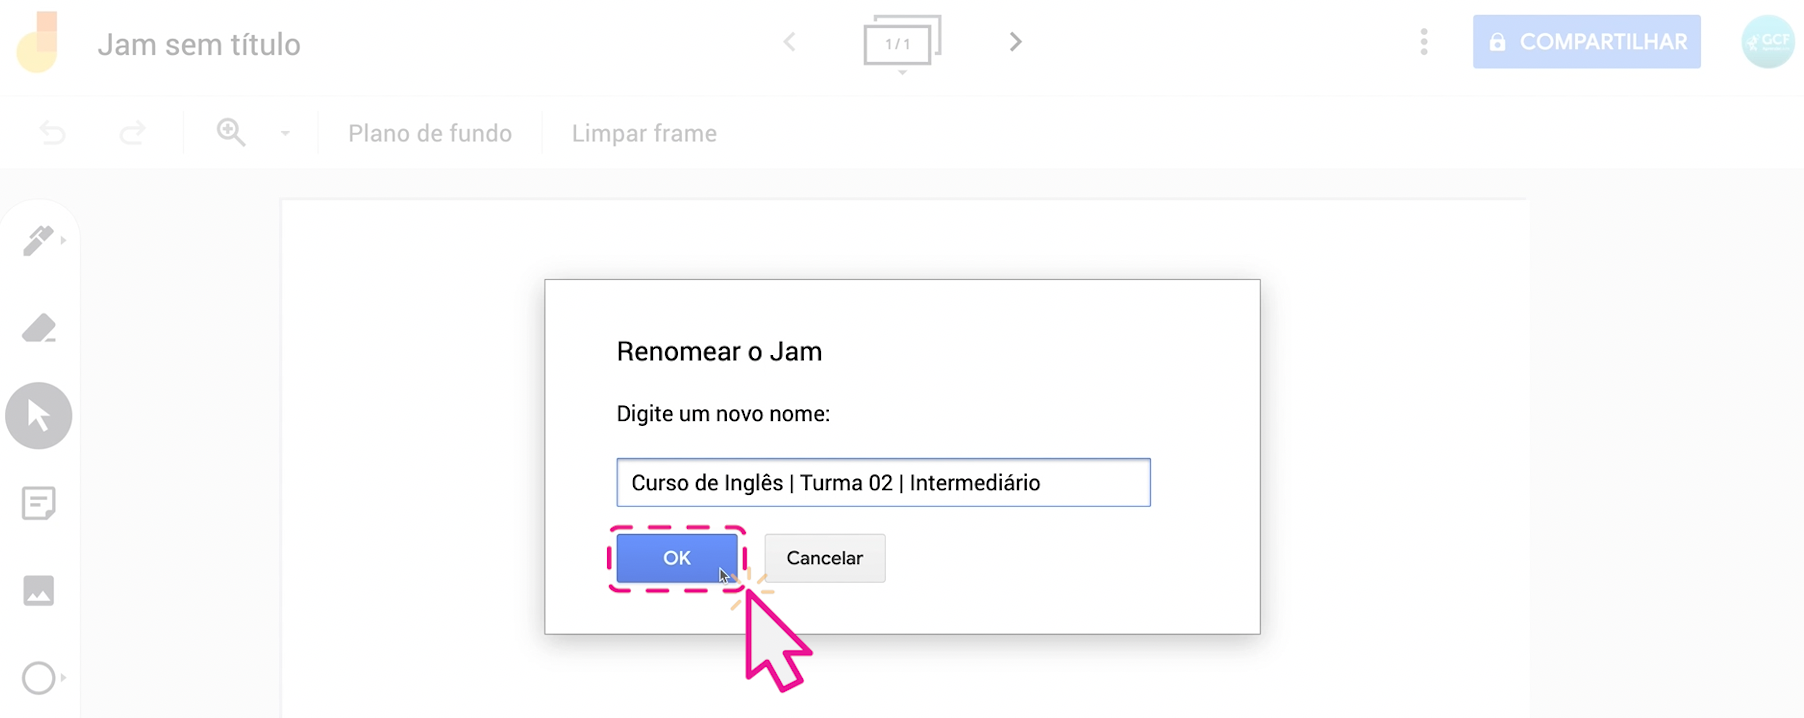 Como usar o Jamboard, o quadro do Google 4